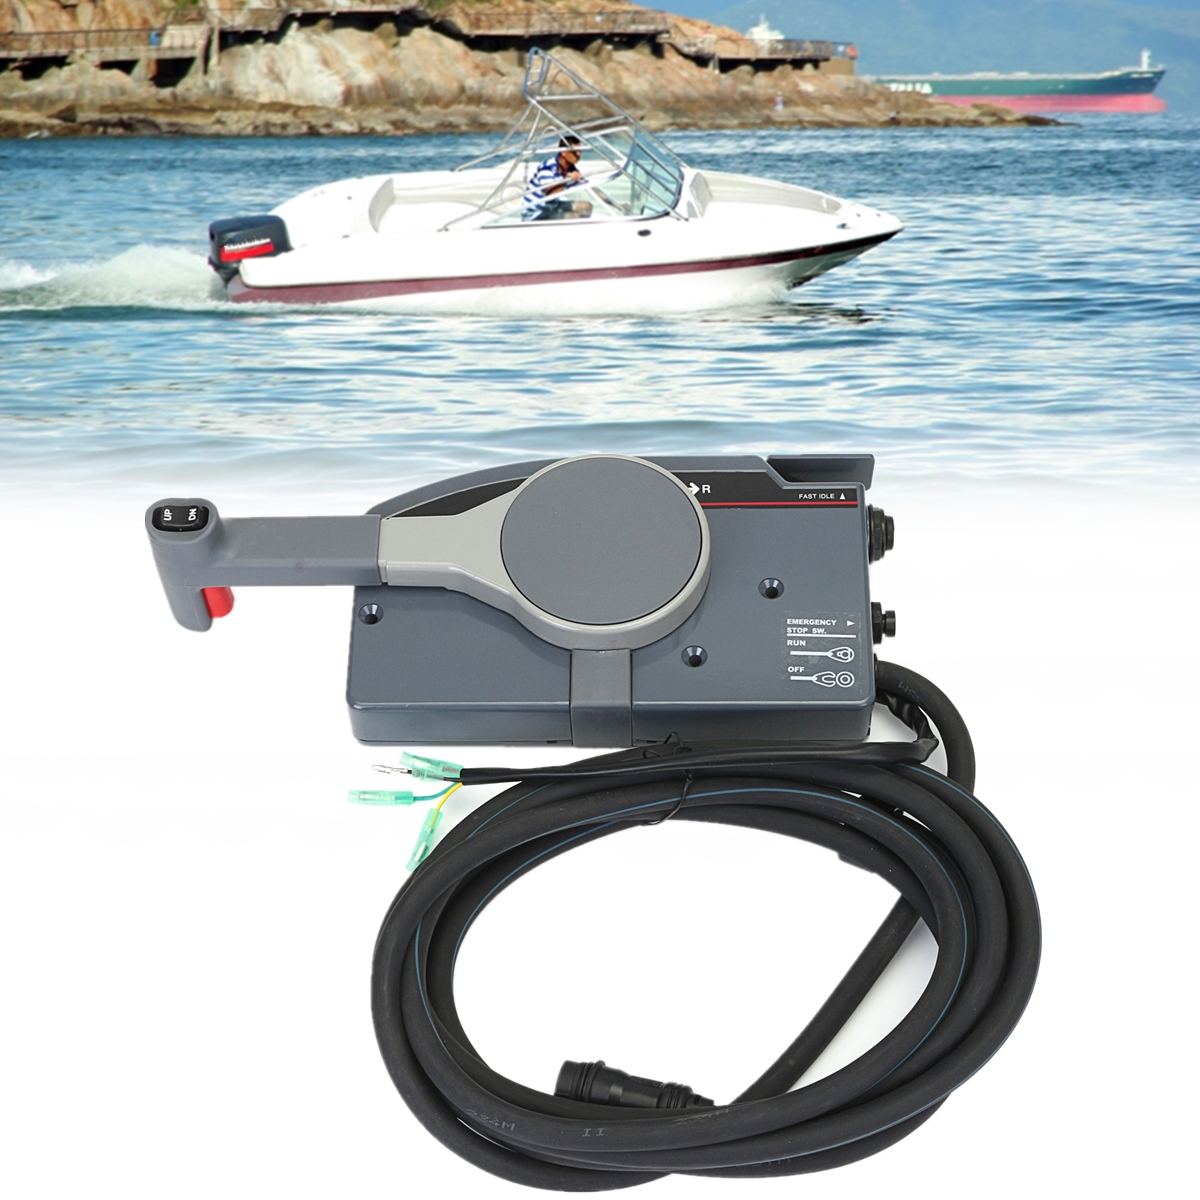 Boat Forward Reverse Switch Bremas Drum Reversing Wiring Diagram Lever Outboard Remote Control Box For Yamaha Pin Cable Right Hand Push